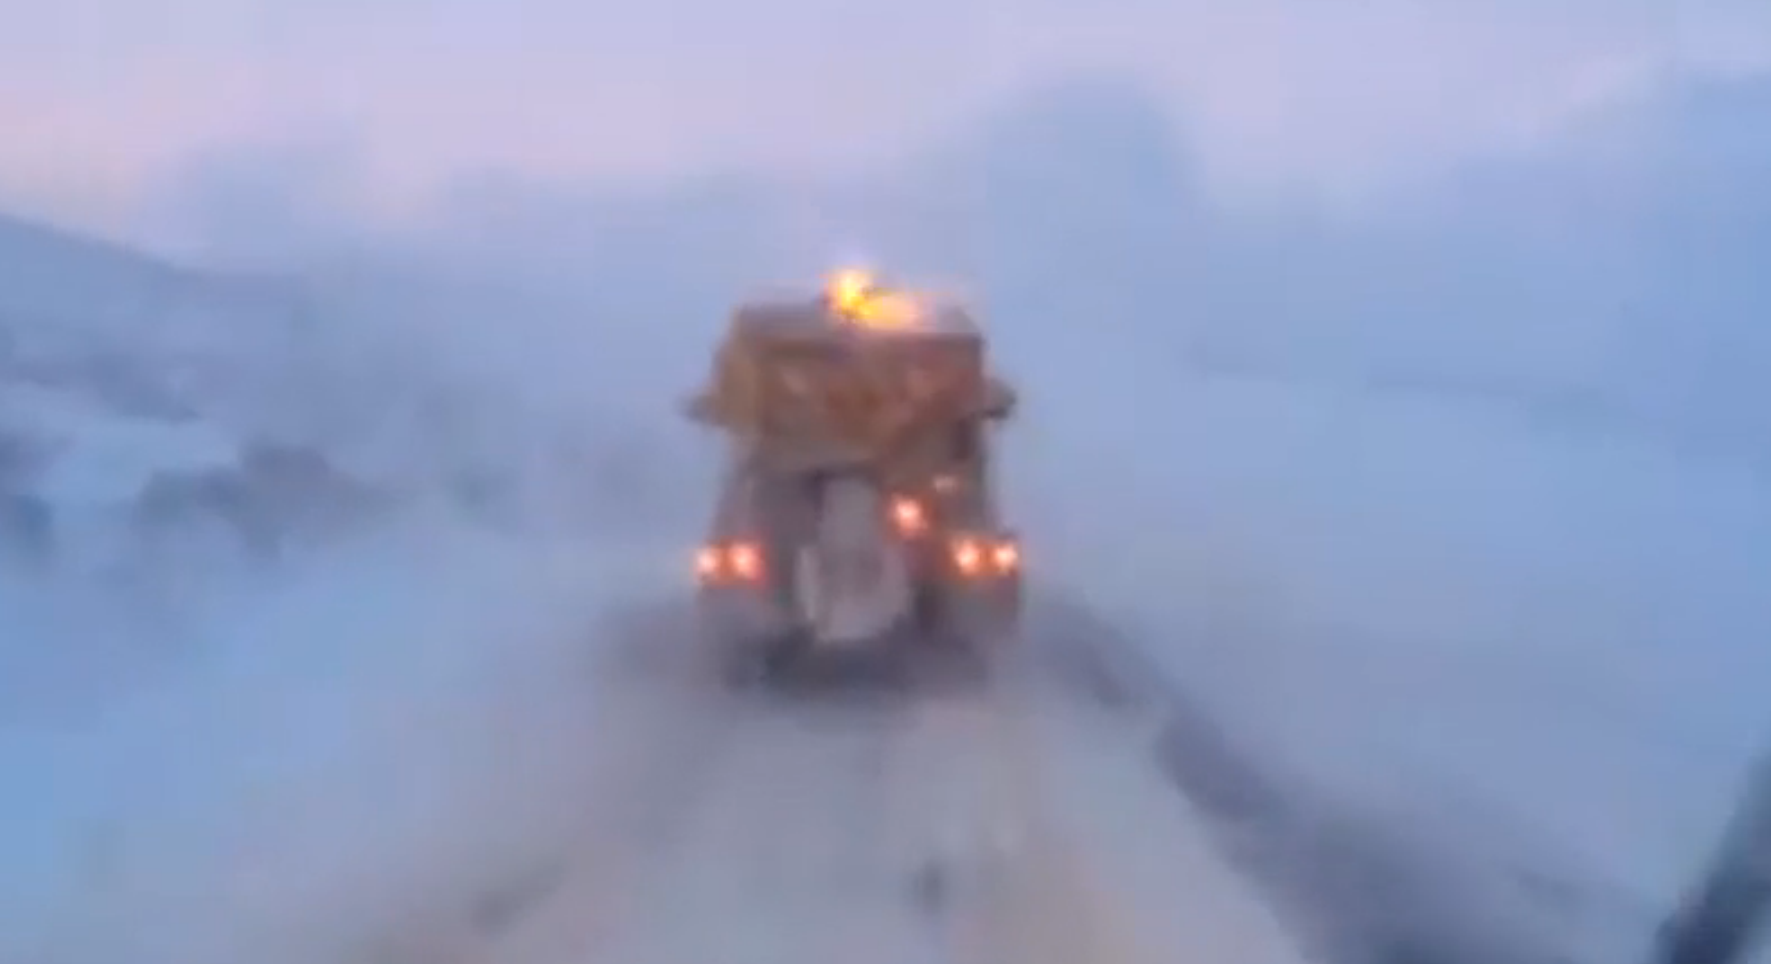 Footage shows hazardous driving conditions